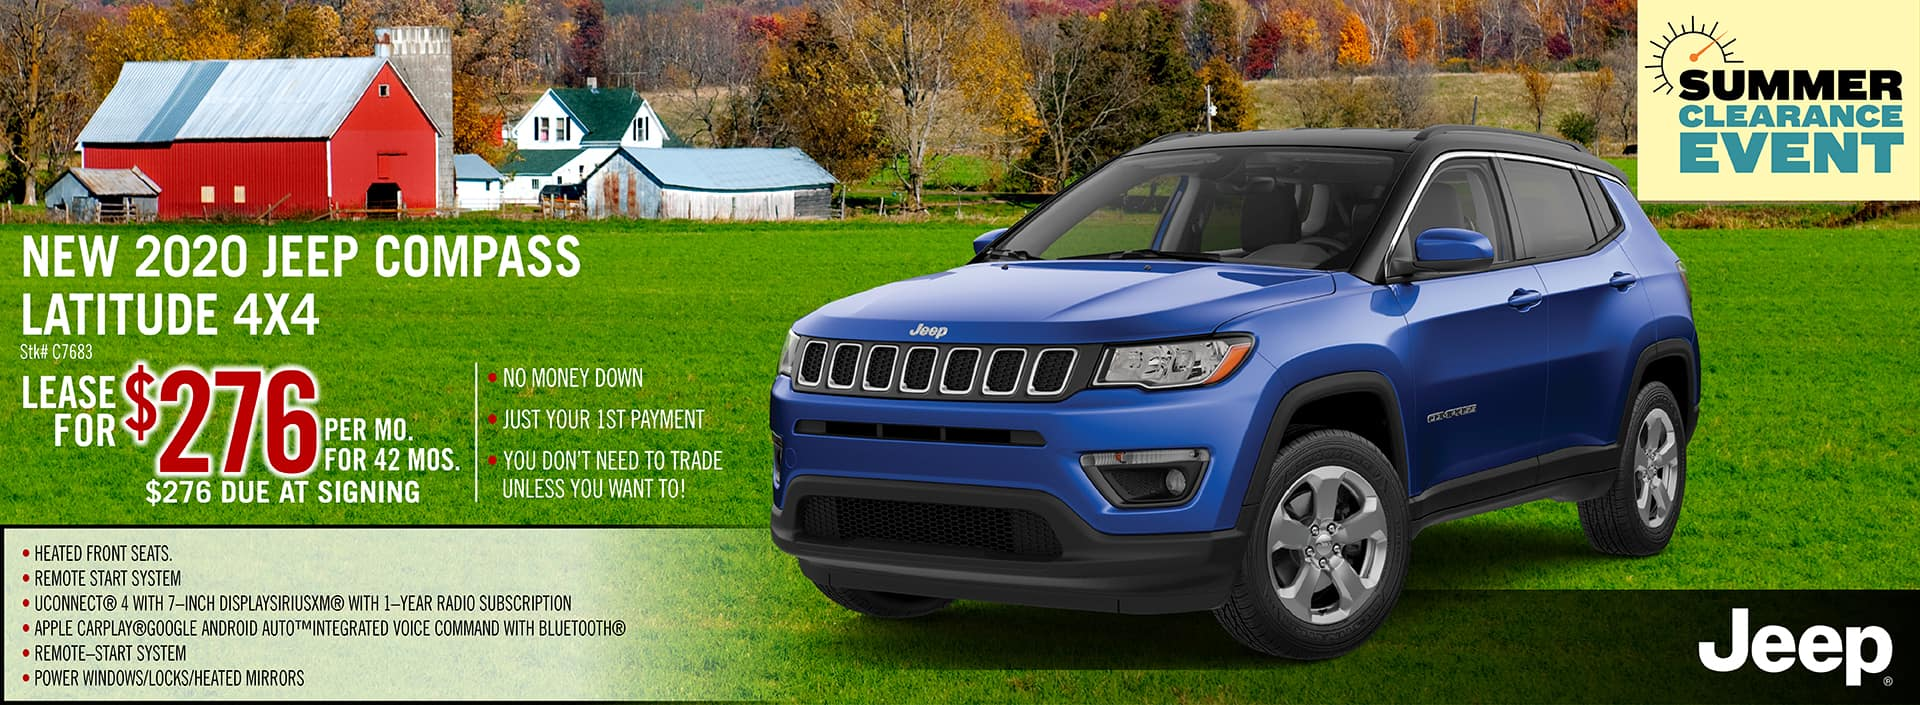 2020 Jeep Compass Lease Offer | Midstate CDJR